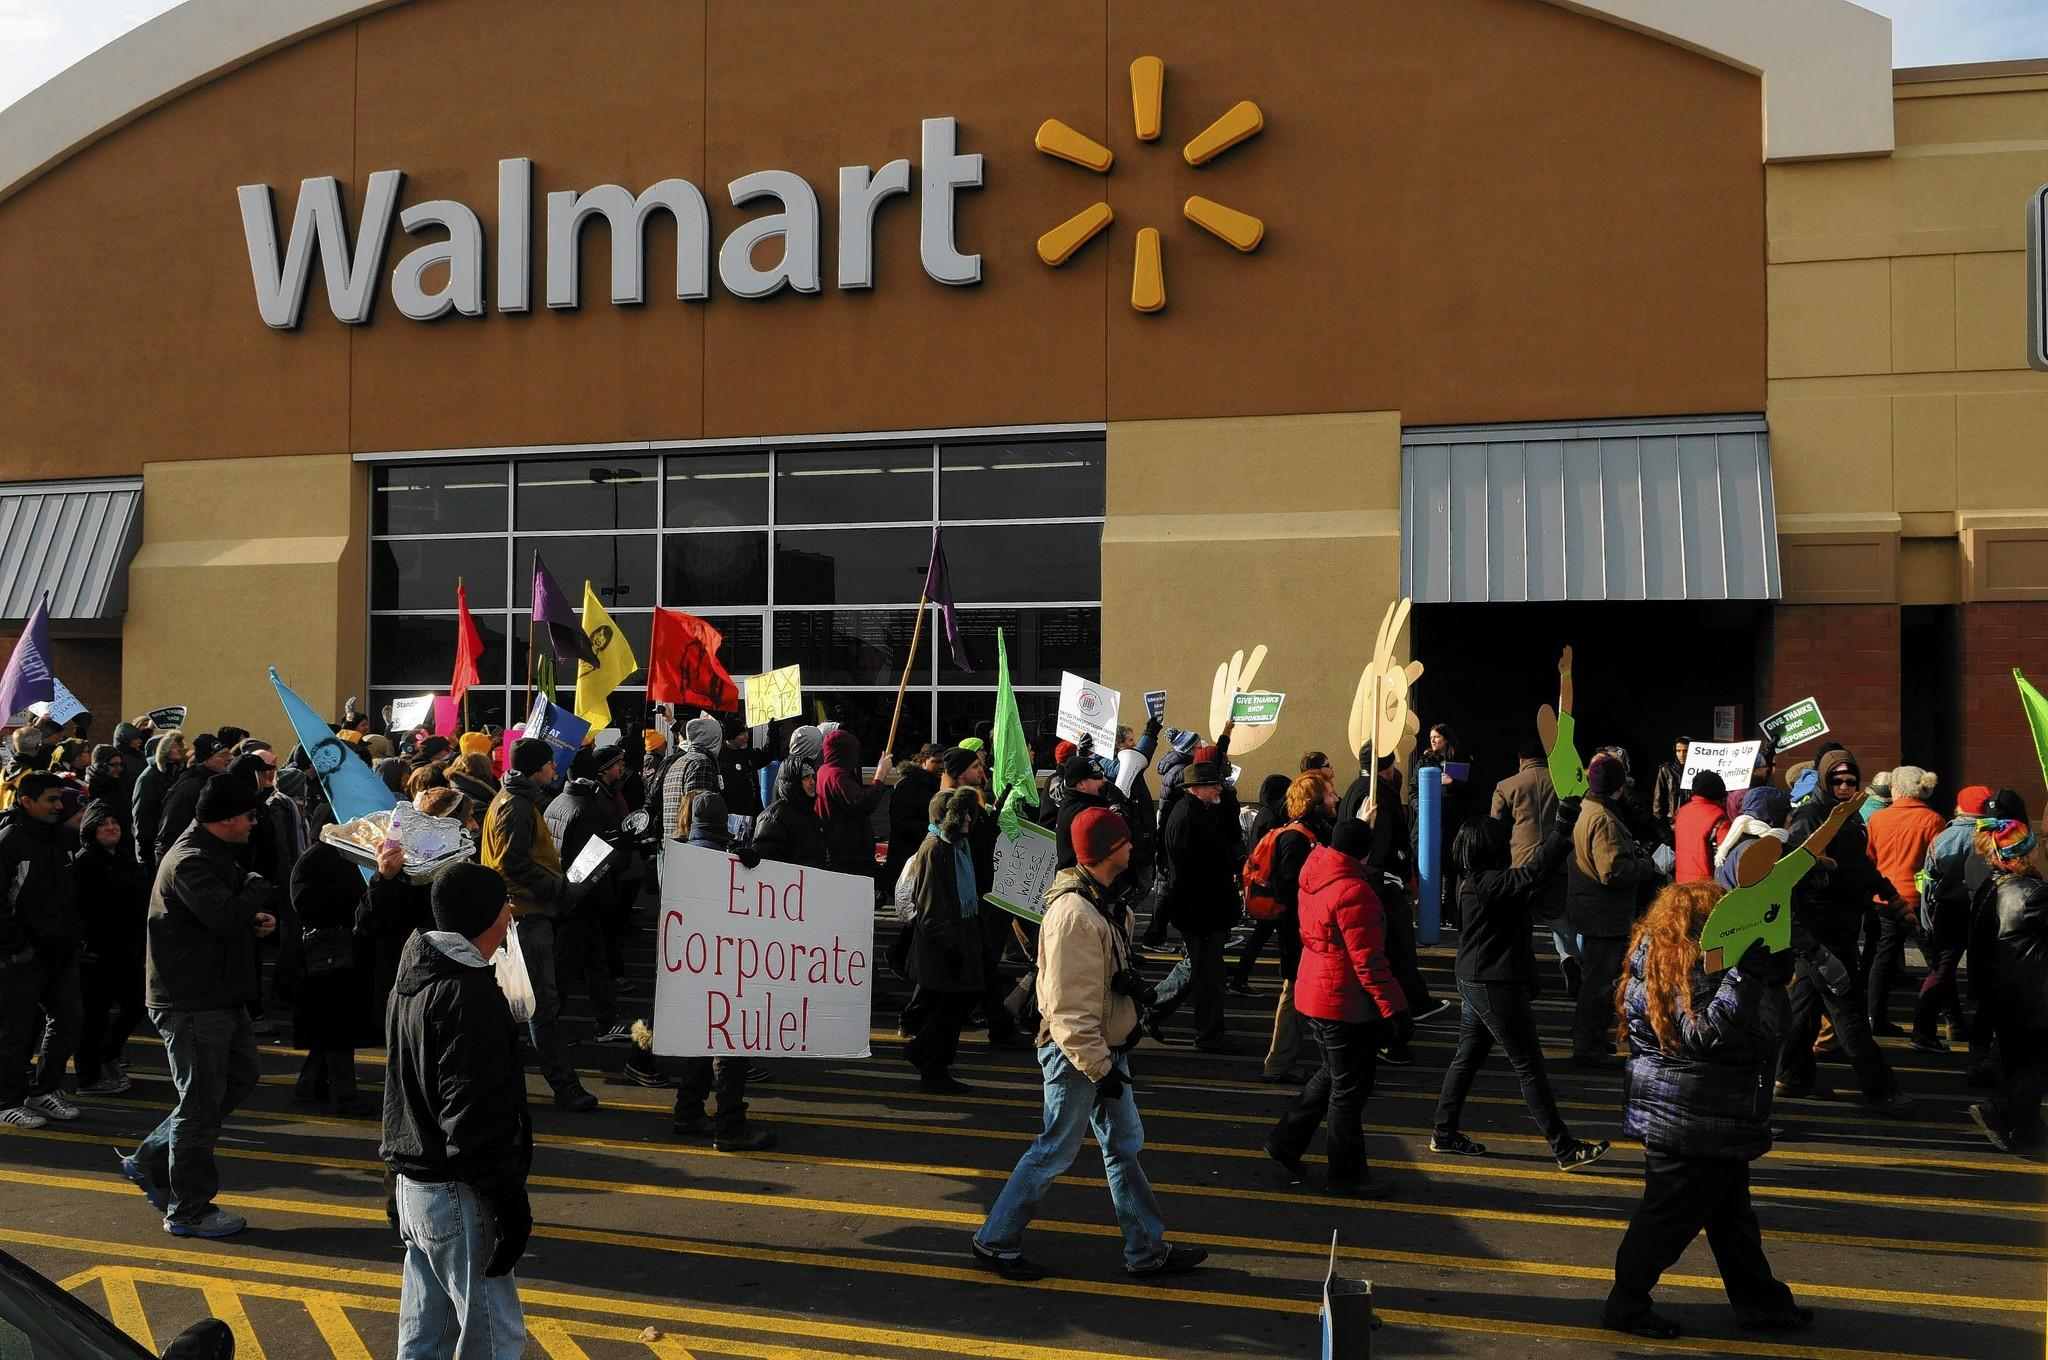 Wednesday's NLRB filing stems from the agency's findings released in November that deemed unlawful Wal-Mart's reactions to employees who participated in strikes around Black Friday in 2012. Above, protestors at a Wal-Mart in St. Paul, Minn., on Nov. 29, 2013.